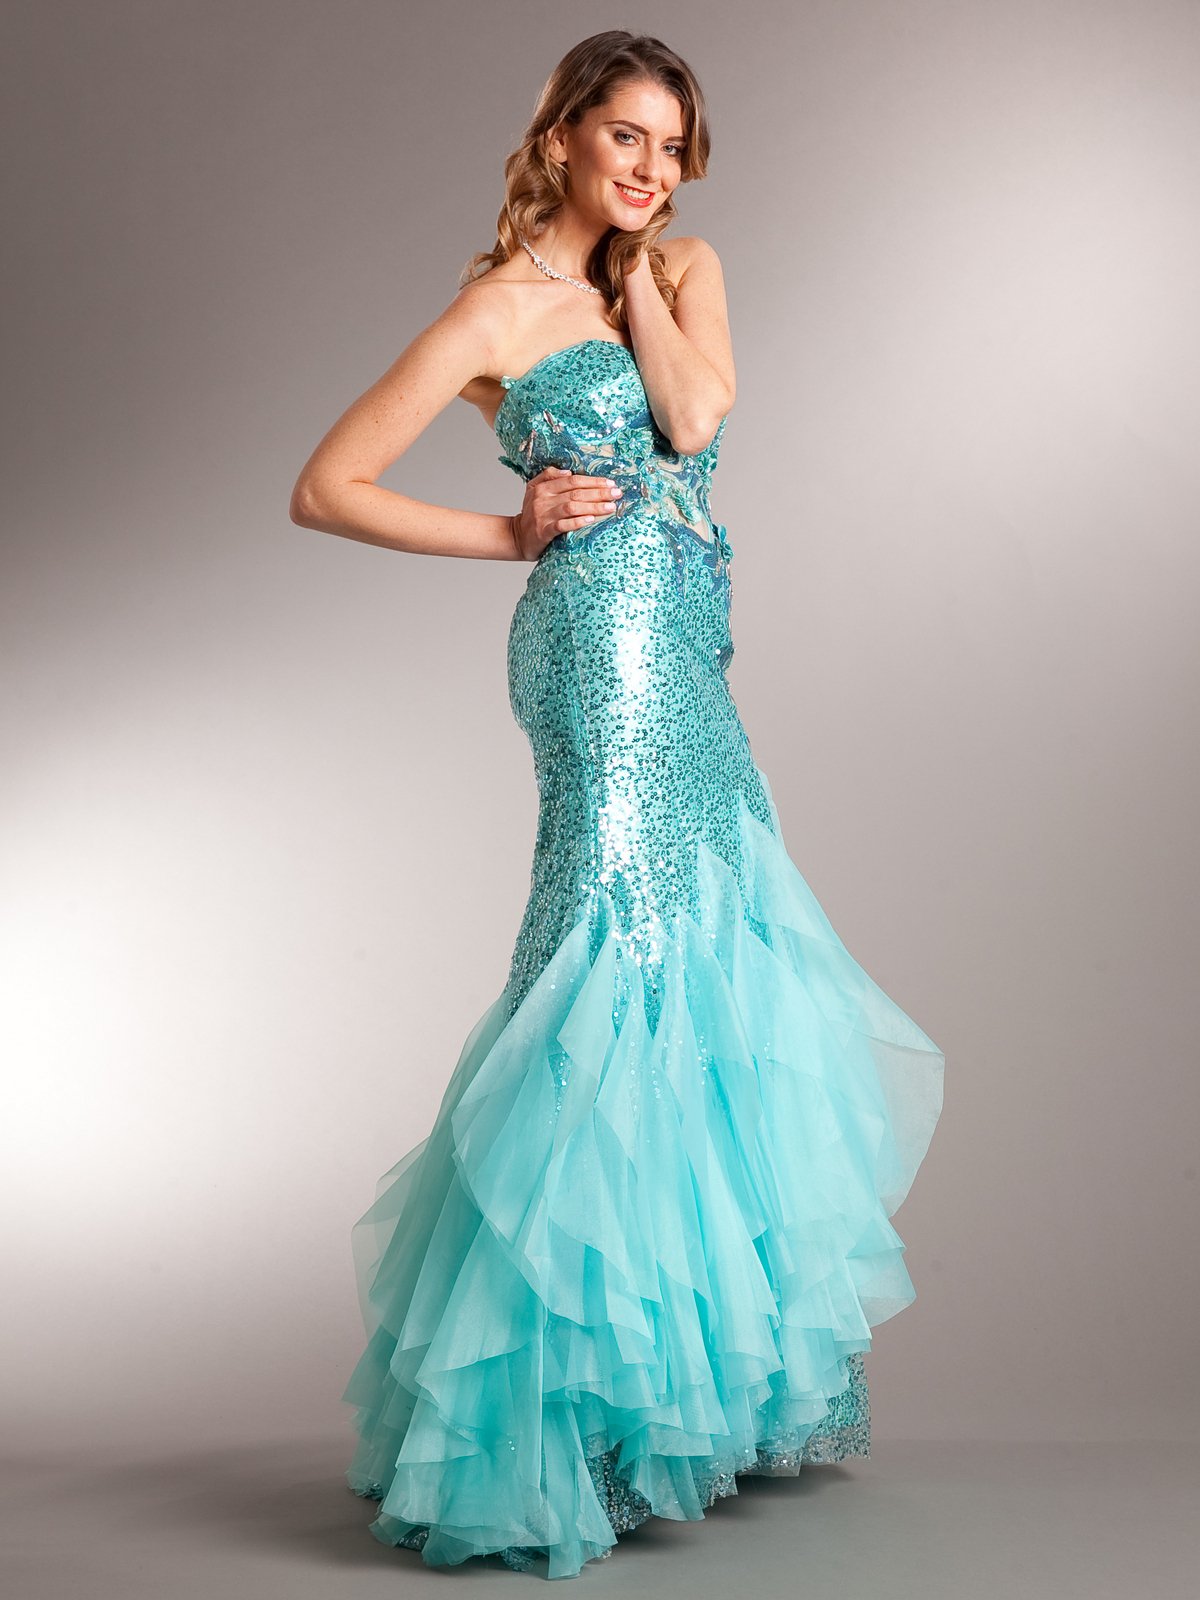 Aqua Sequin Prom Dress Sung Boutique L A